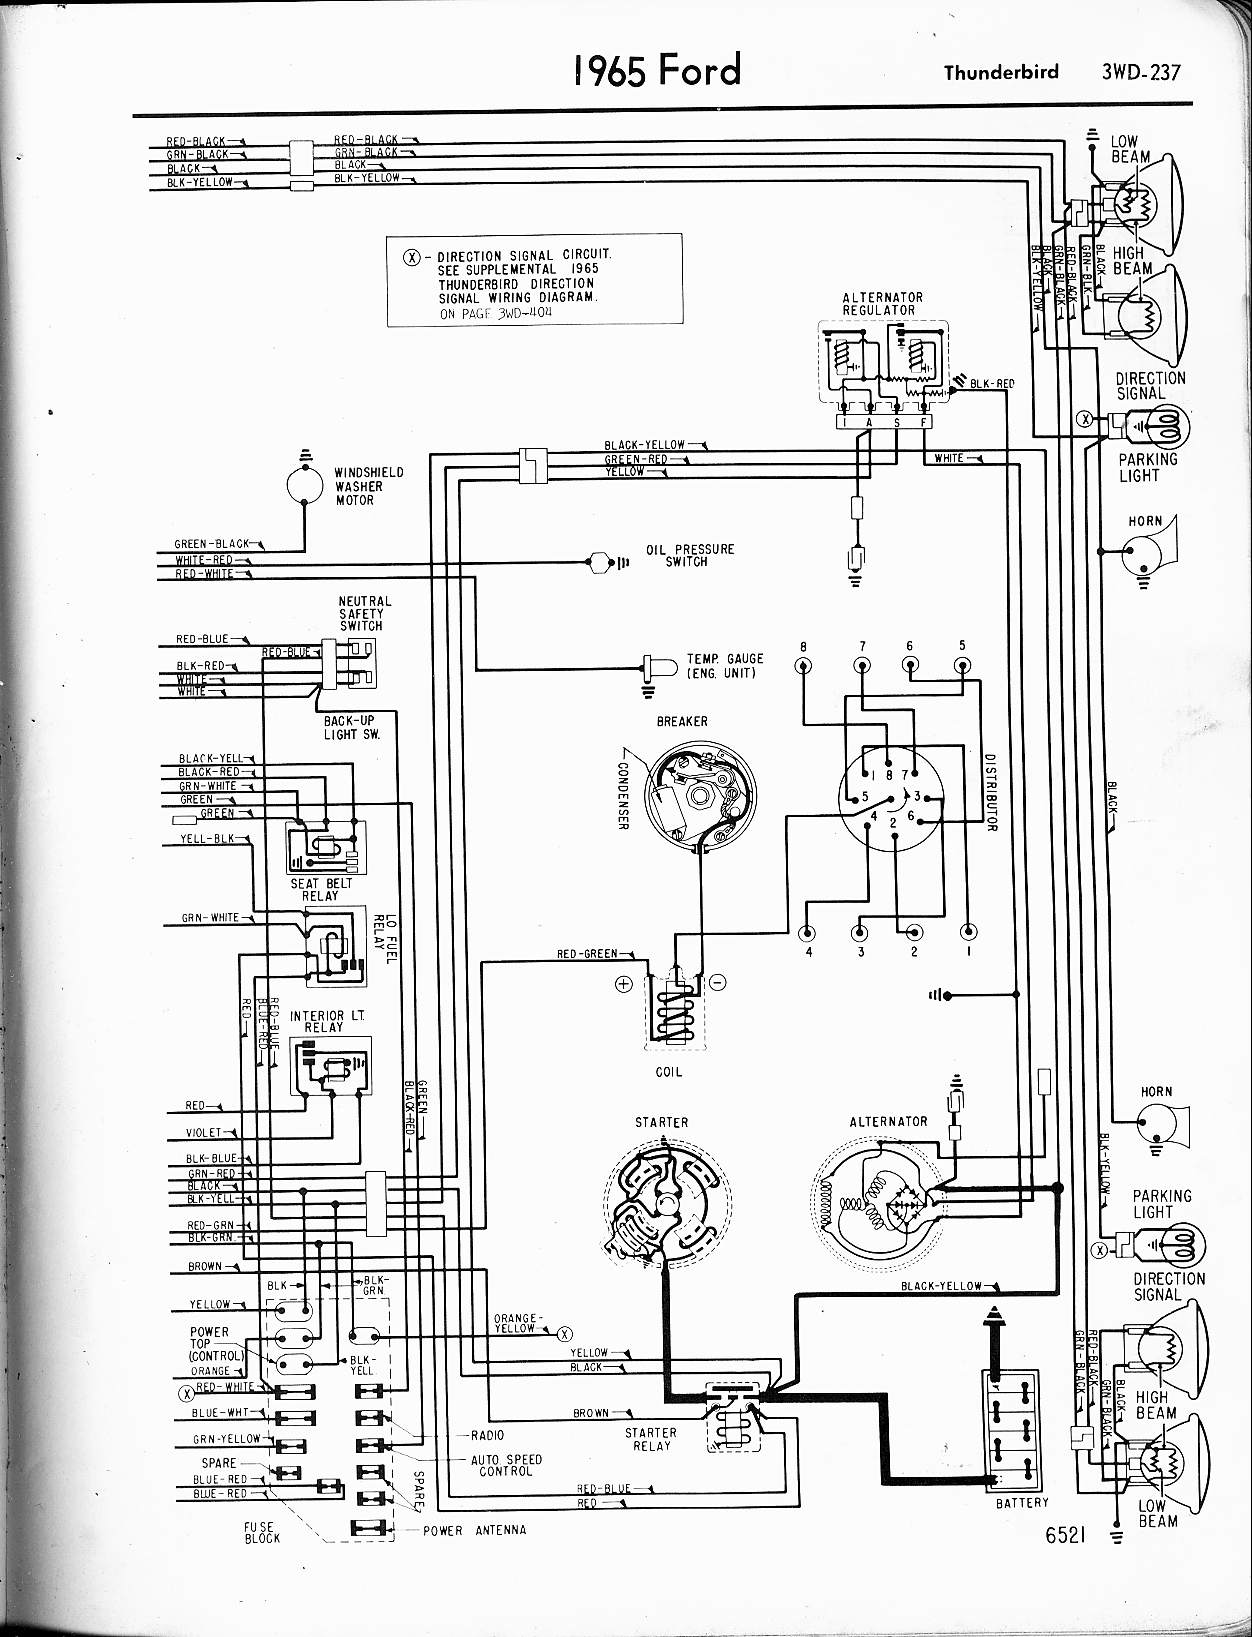 MWire5765 237 1964 1966 thunderbirfd wiring schematic 66 mustang wiring diagram draw simple wiring diagrams at n-0.co